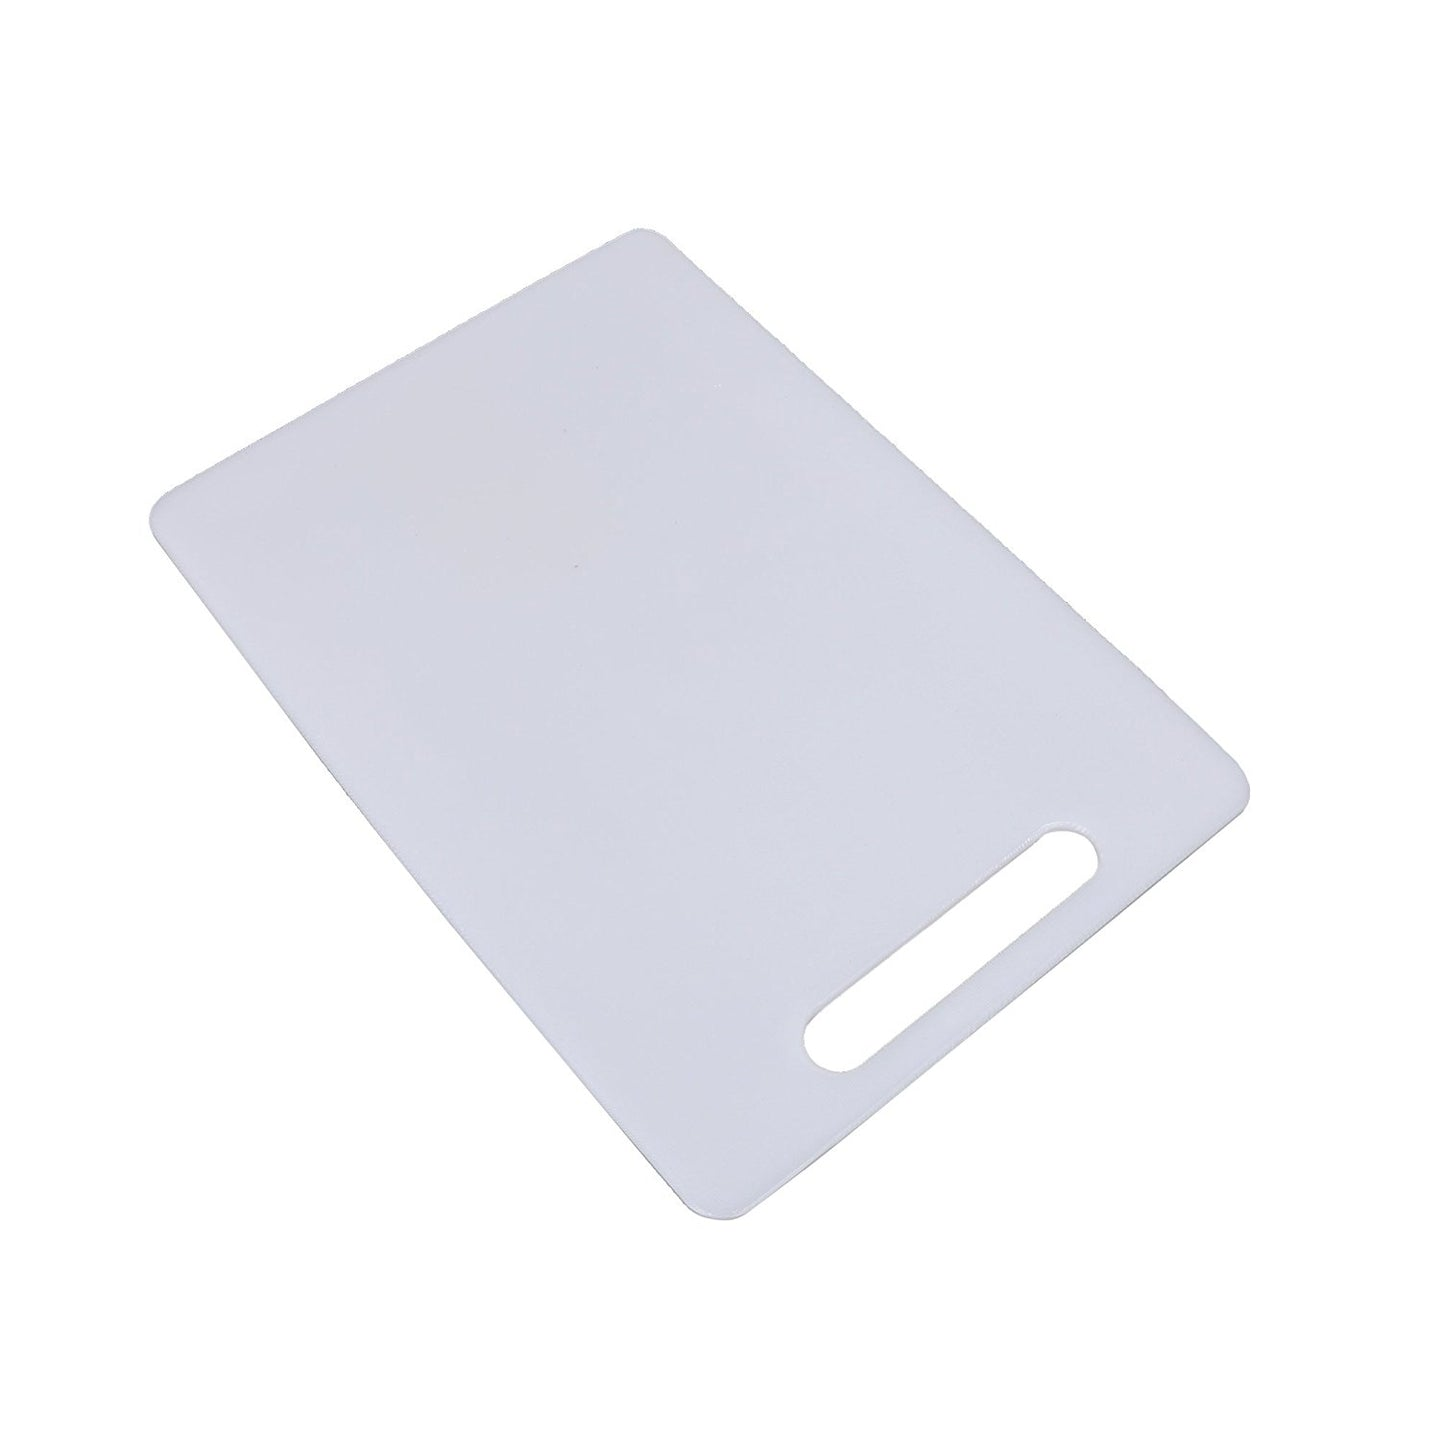 Luciano, 12 x 8.3 x 0.2 inches, Plastic Cutting Board, White